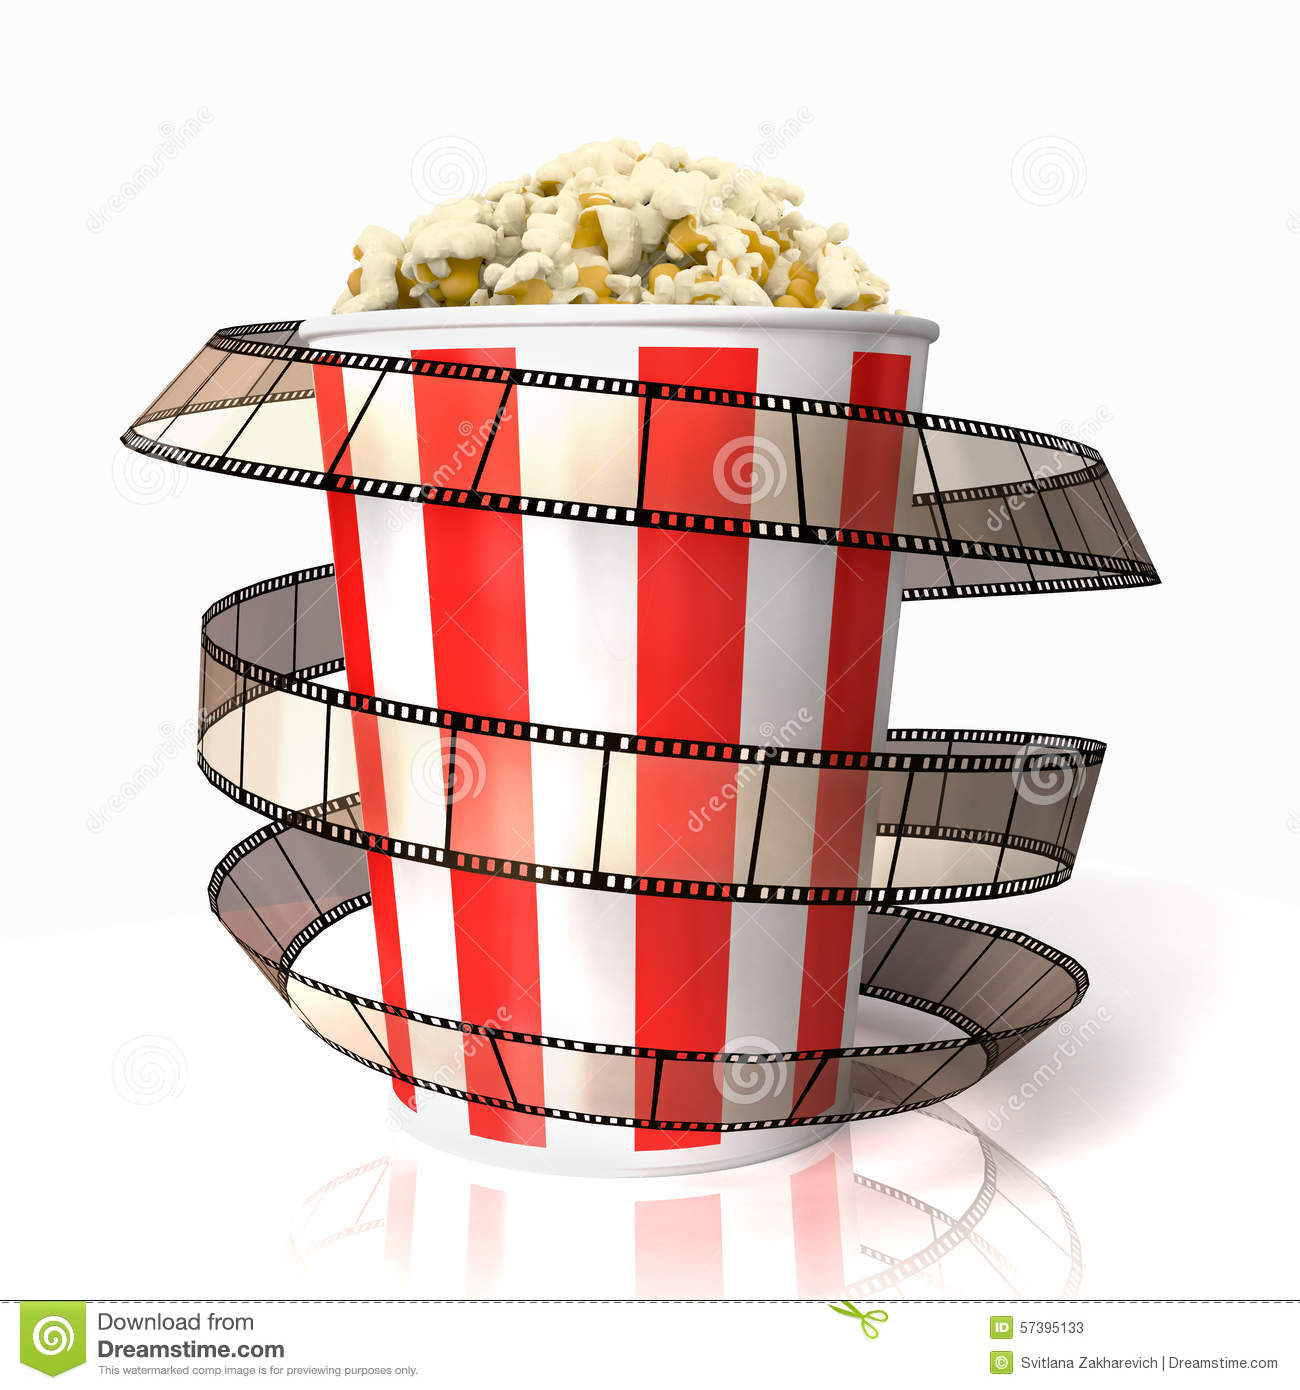 De popcorn wraped filmstrook